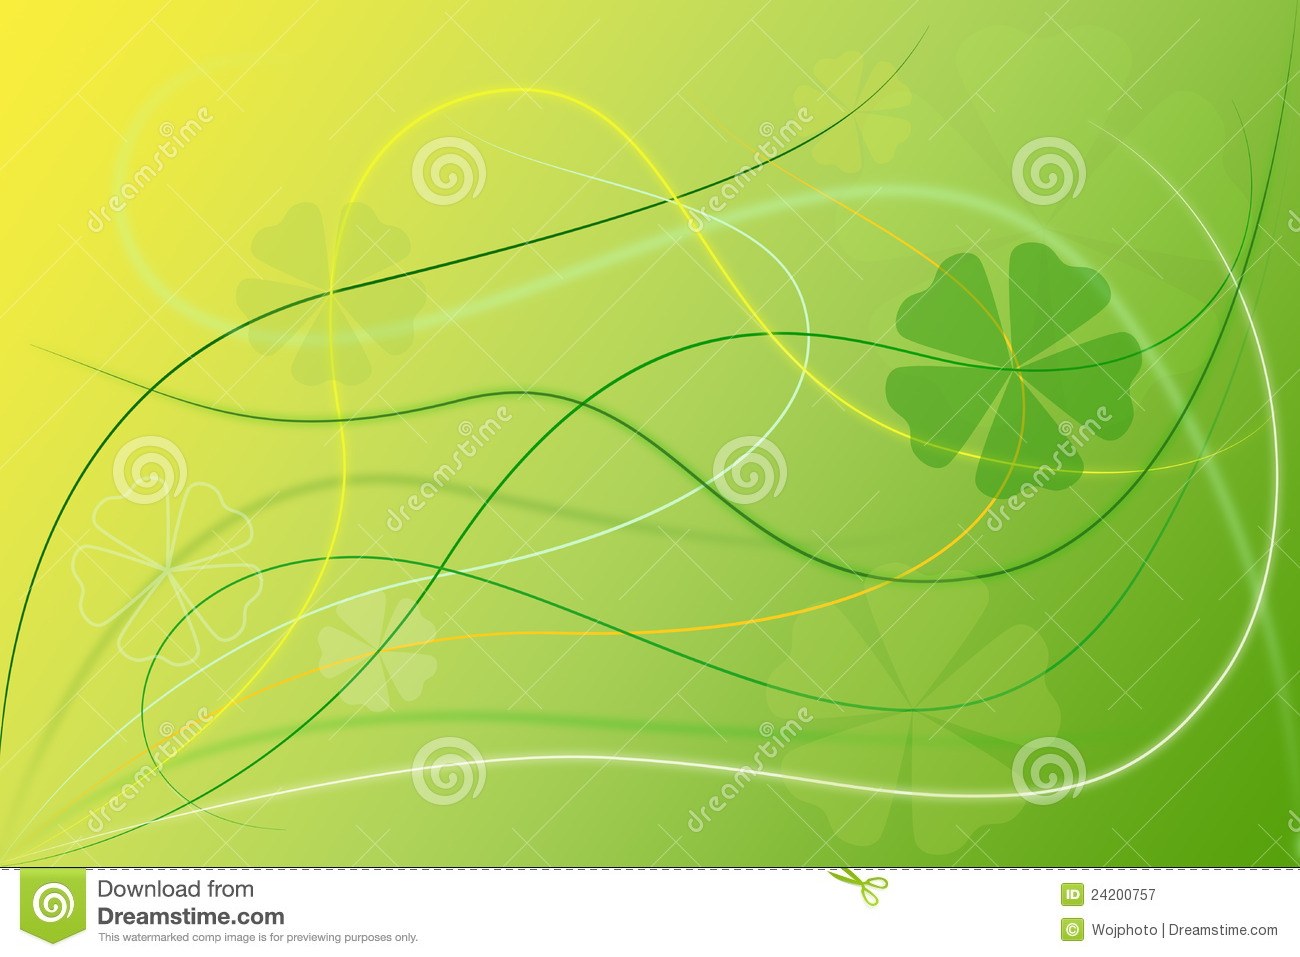 Abstract Sports Background Royalty Free Stock Image: Abstract Green Floral Background Wallpaper Royalty Free